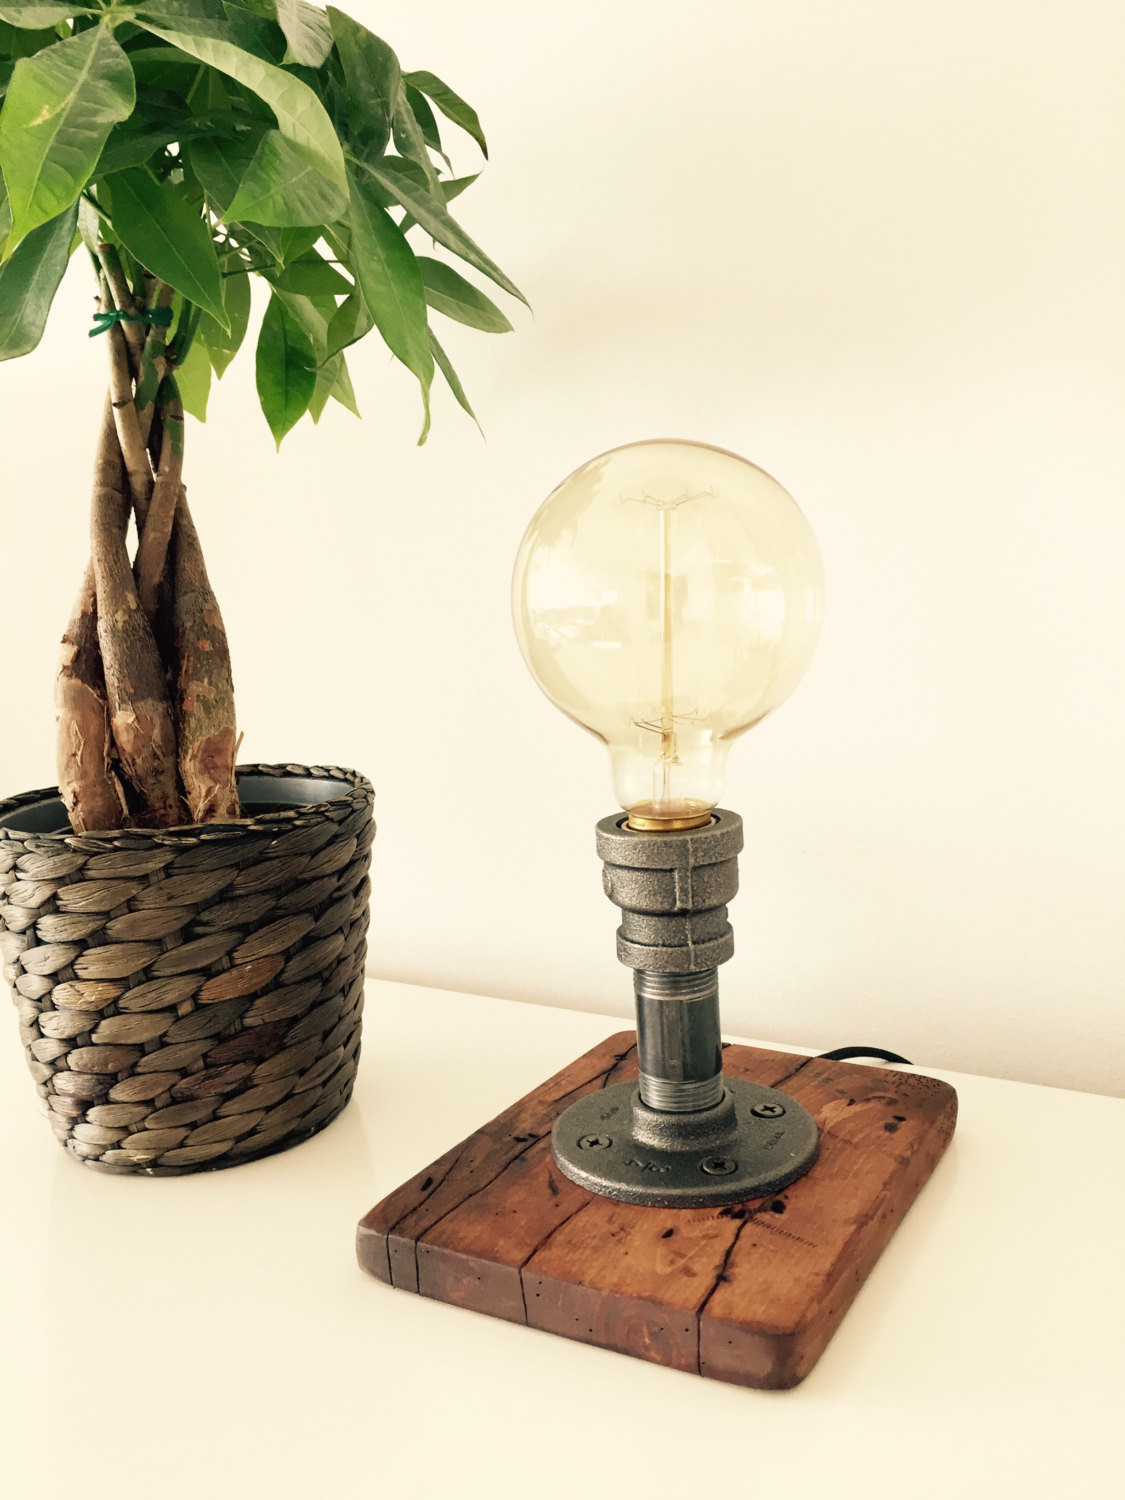 Best ideas about Rustic Desk Lamp . Save or Pin Industrial Modern Rustic Table Lamp Desk Lamp Light Now.